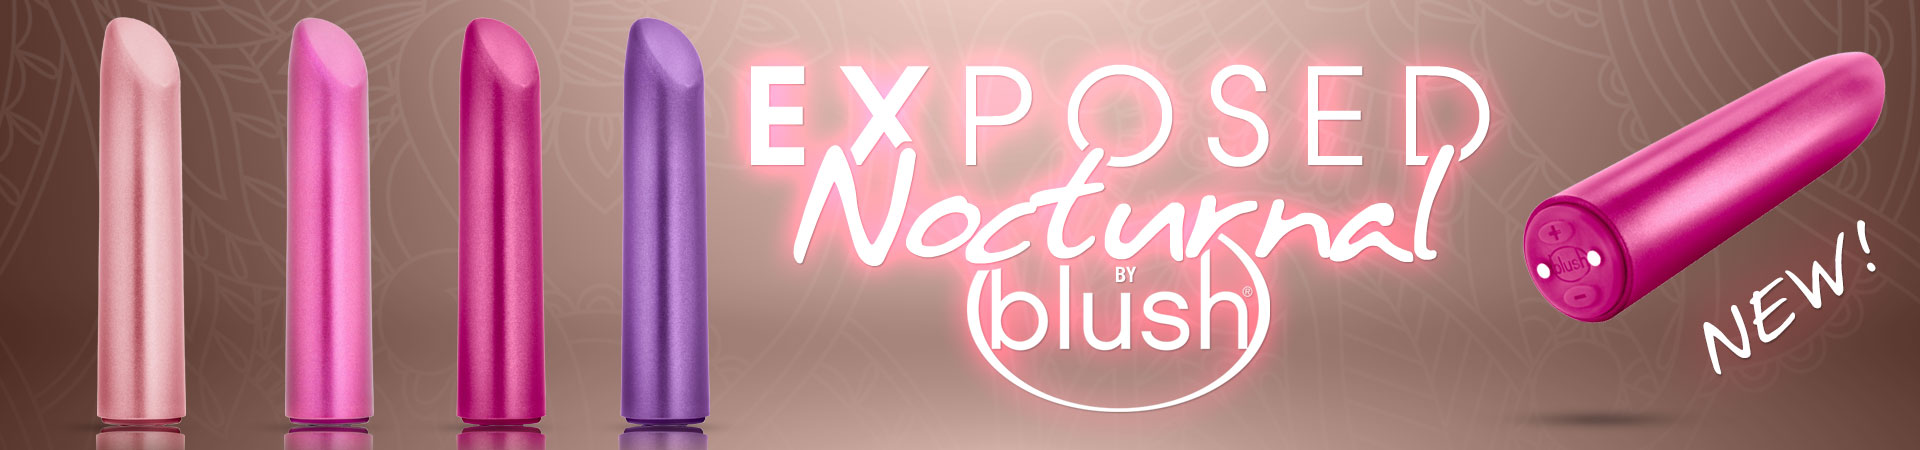 "NEW! Exposed Nocturnal by Blush - ""We are not bragging here, just telling the truth. These are incredibly strong and rumbly! Please power one up and compare to anything you've ever felt."" - Ducky DooLittle, Sex Educator"